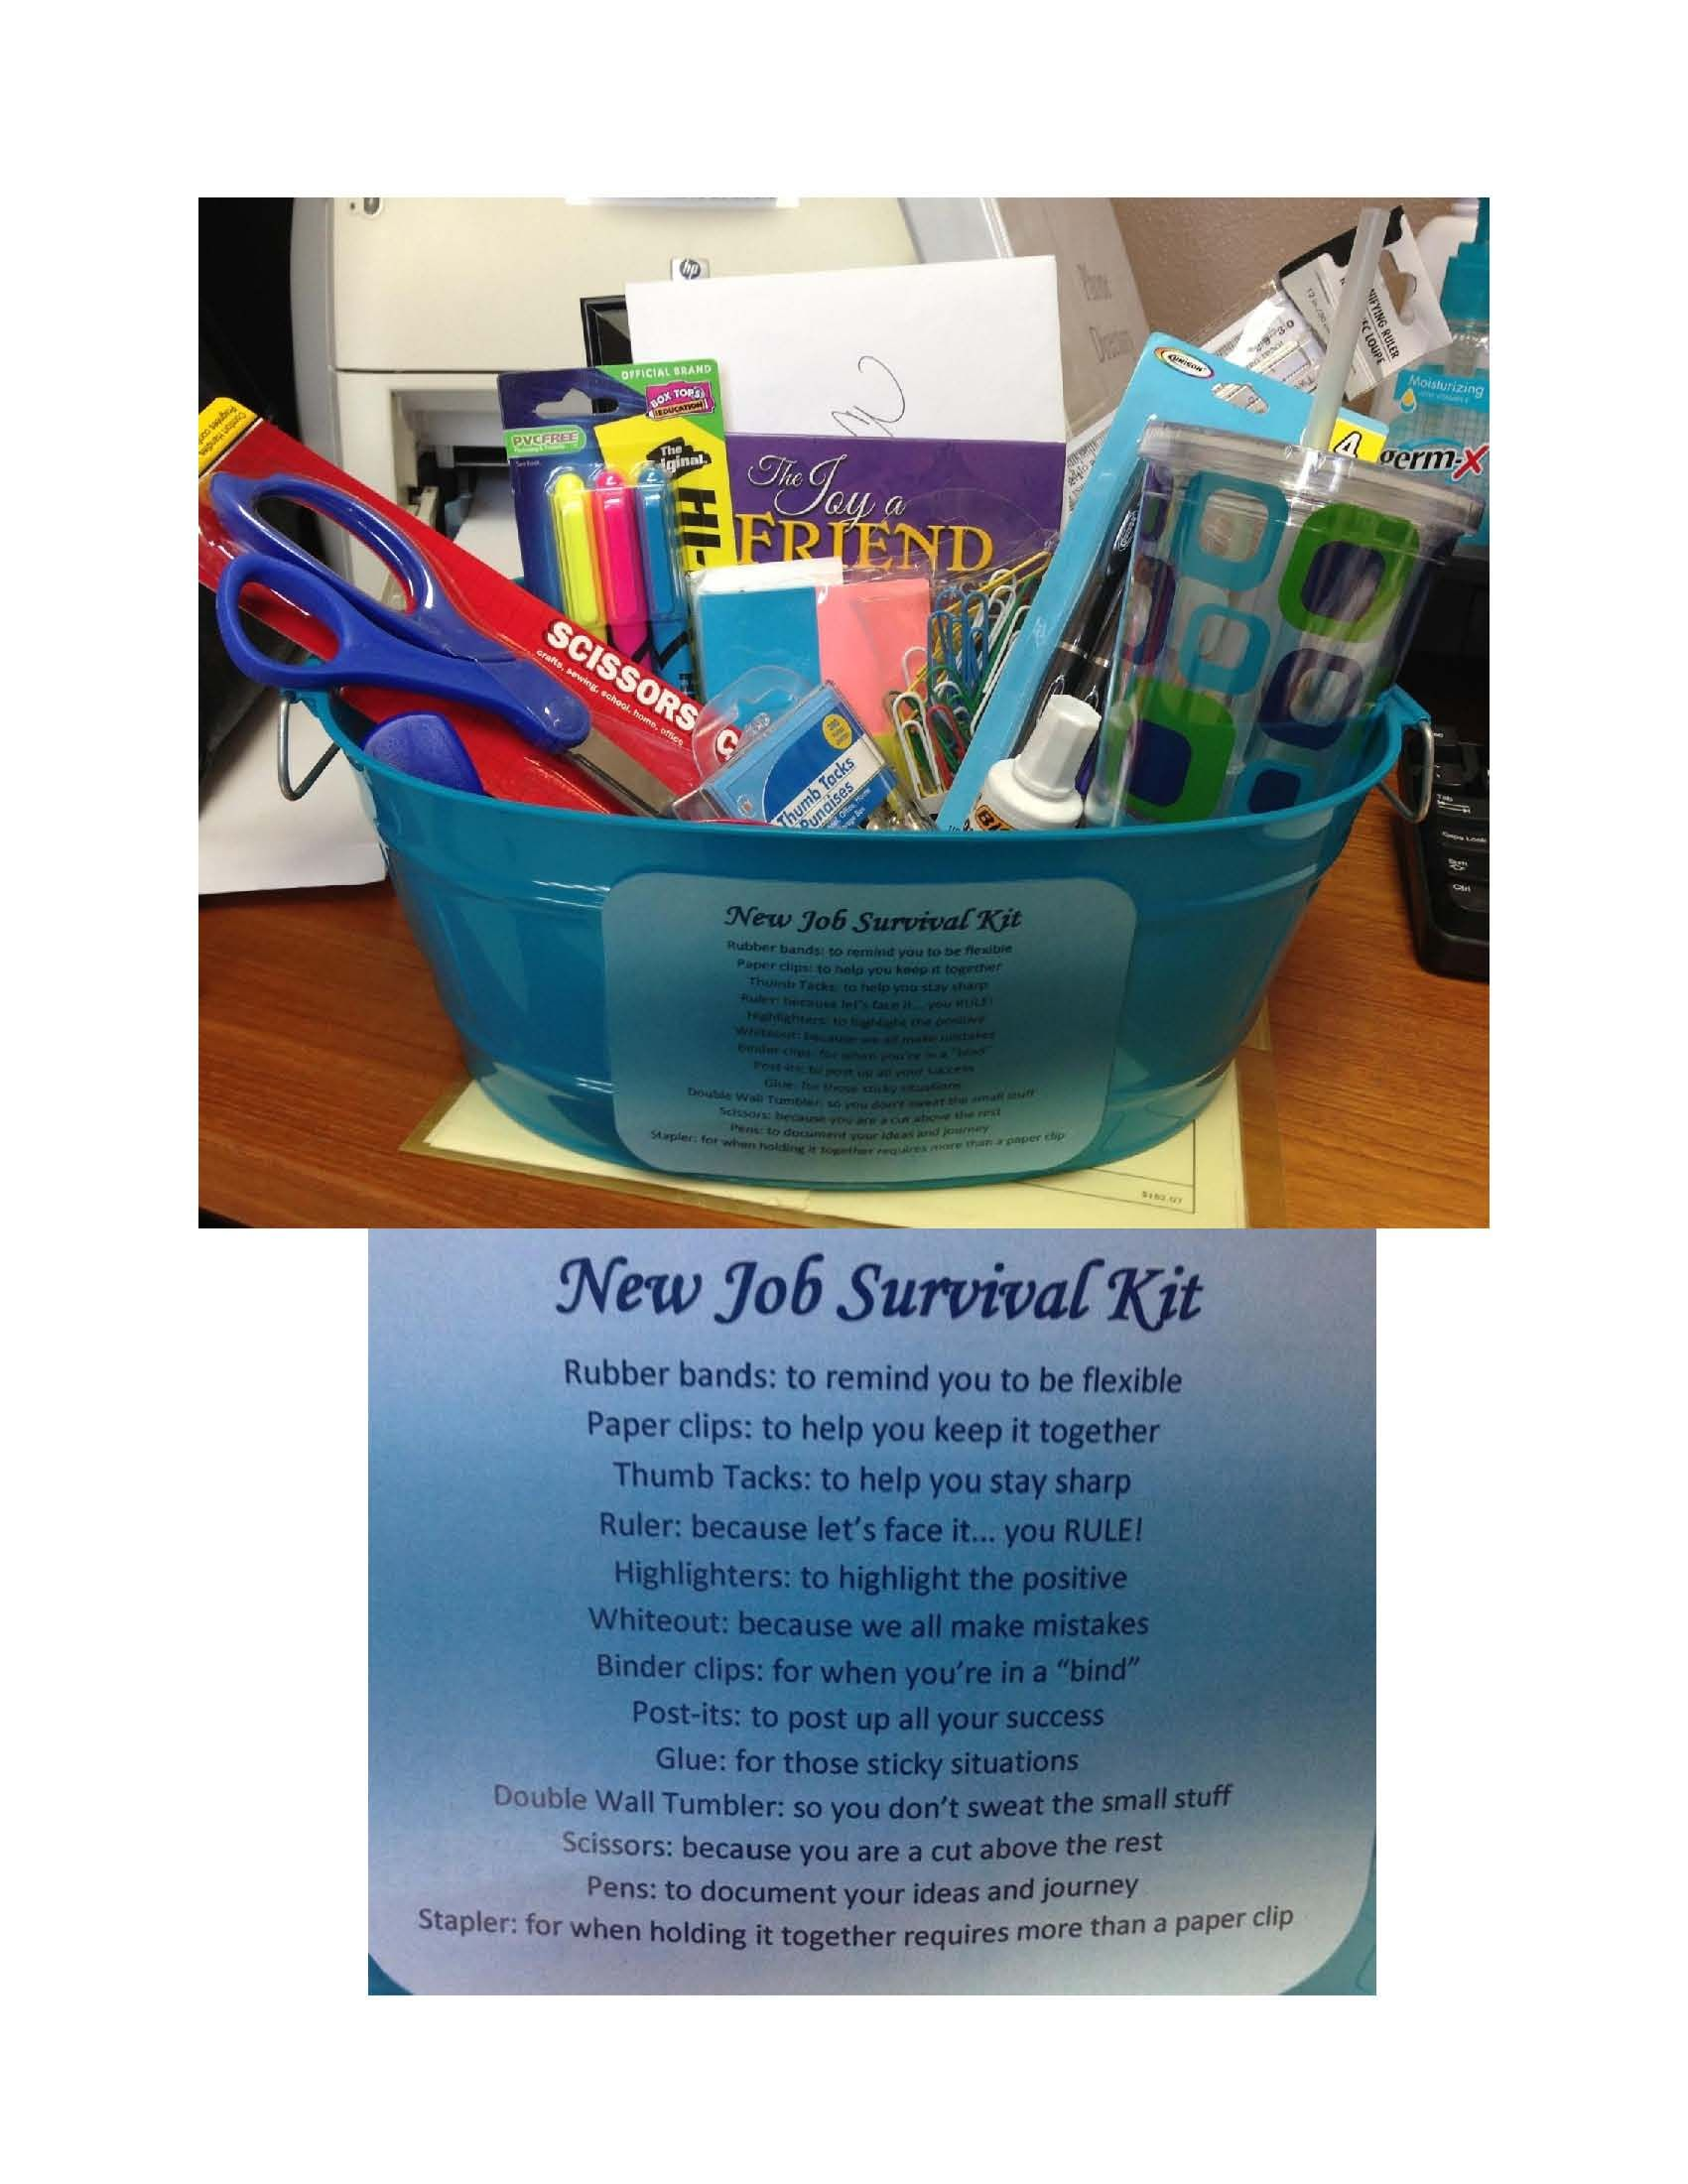 Farewell Ideas For Coworkers - New job survival kit i made as a gift for a coworker